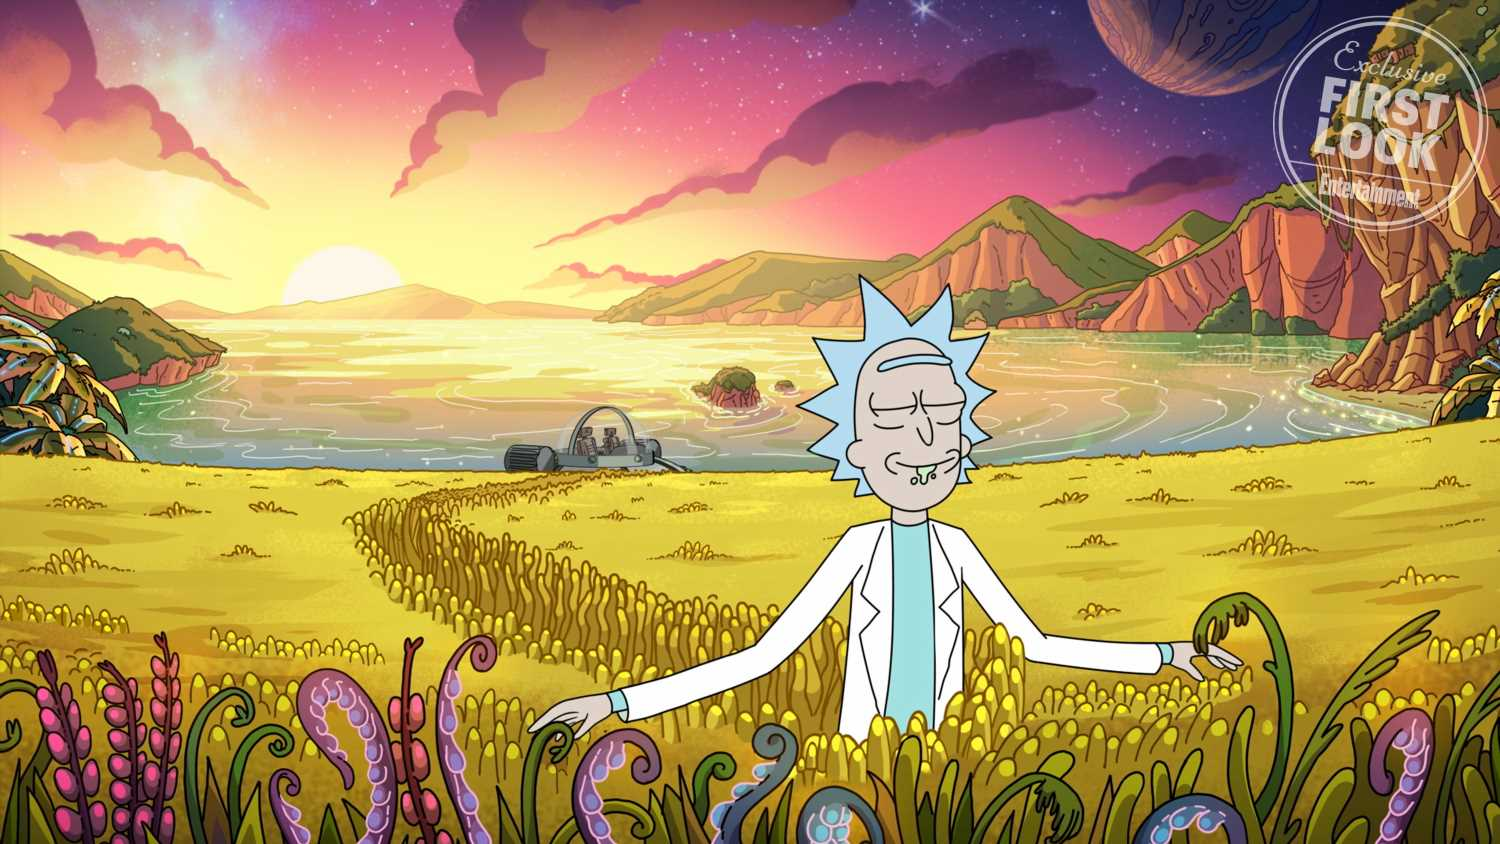 Rick and Morty first photos from season 4 revealed